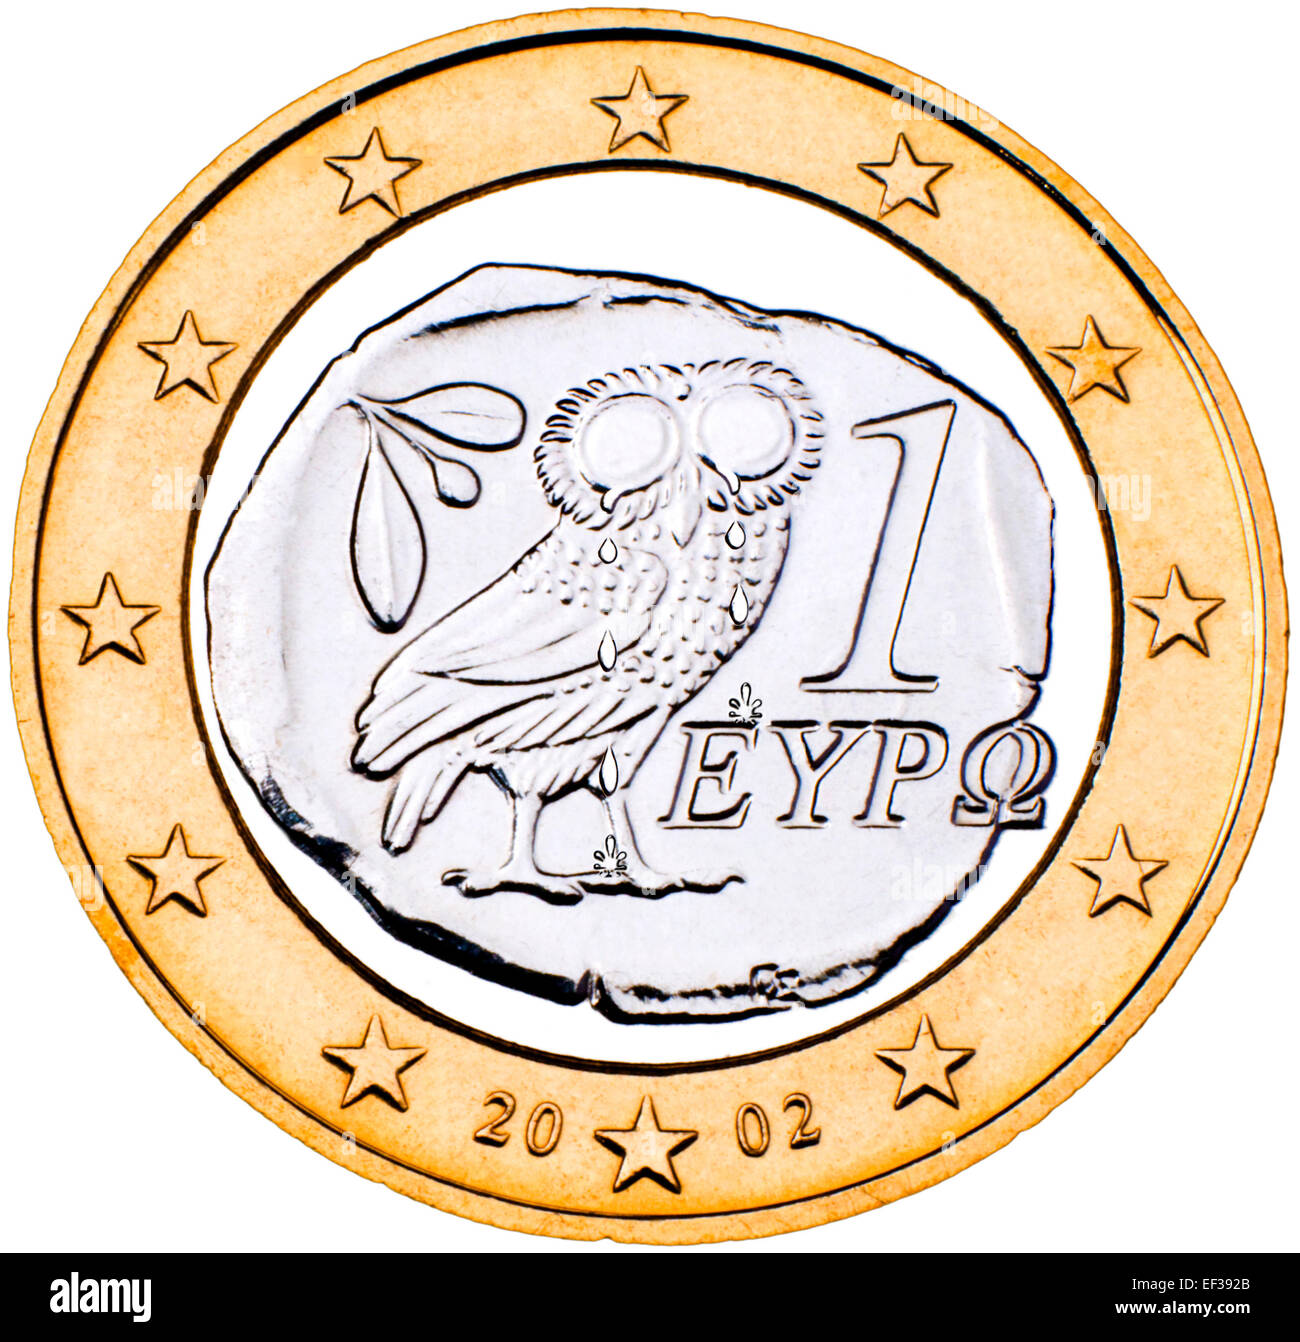 Greek 1 Euro Coin (reverse) with the owl crying - Stock Image